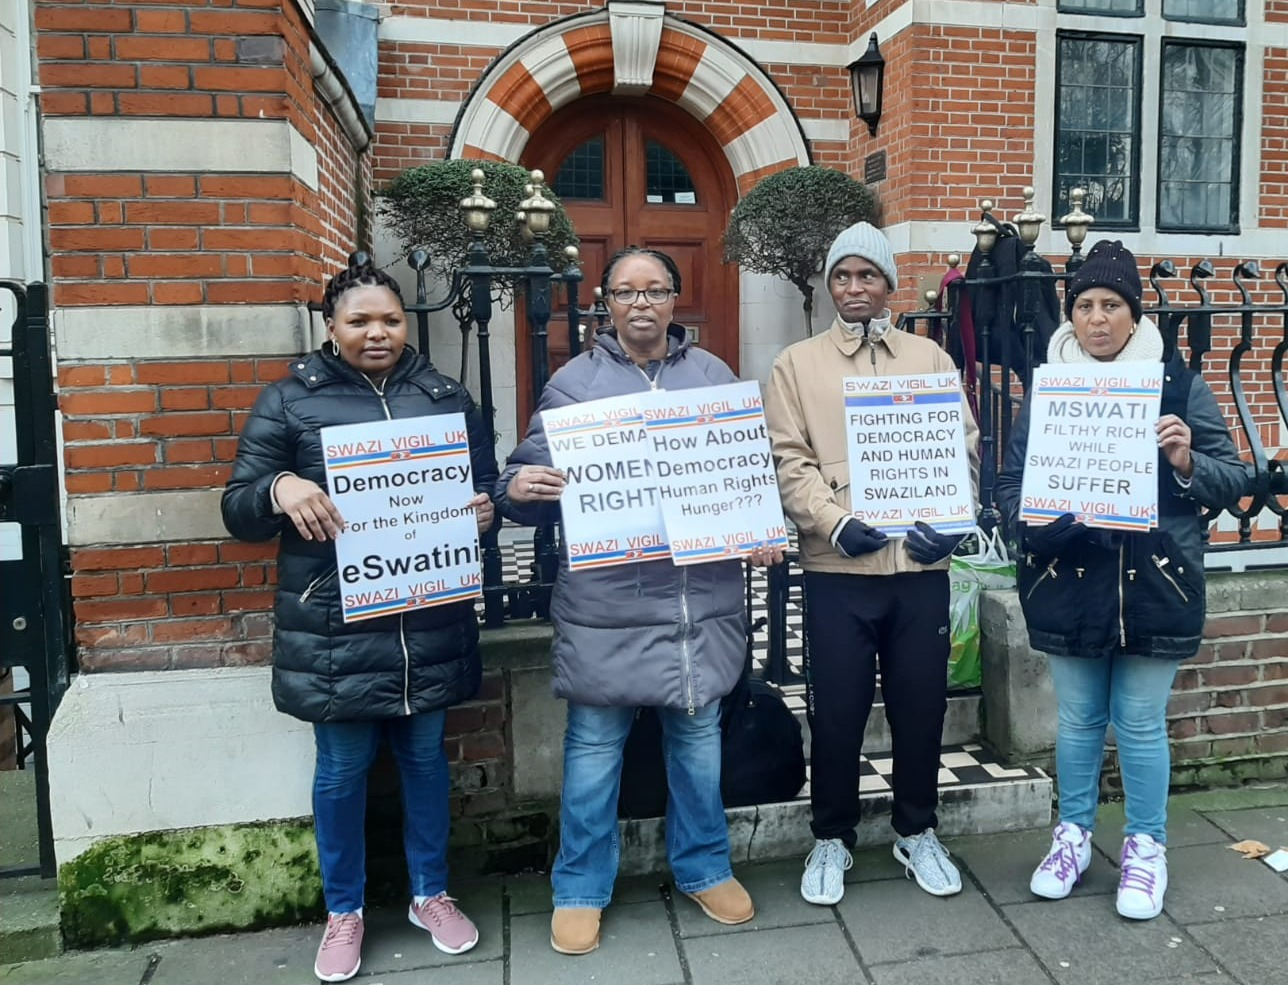 UK based political activists to continue engaging British government to put pressure on Eswatini